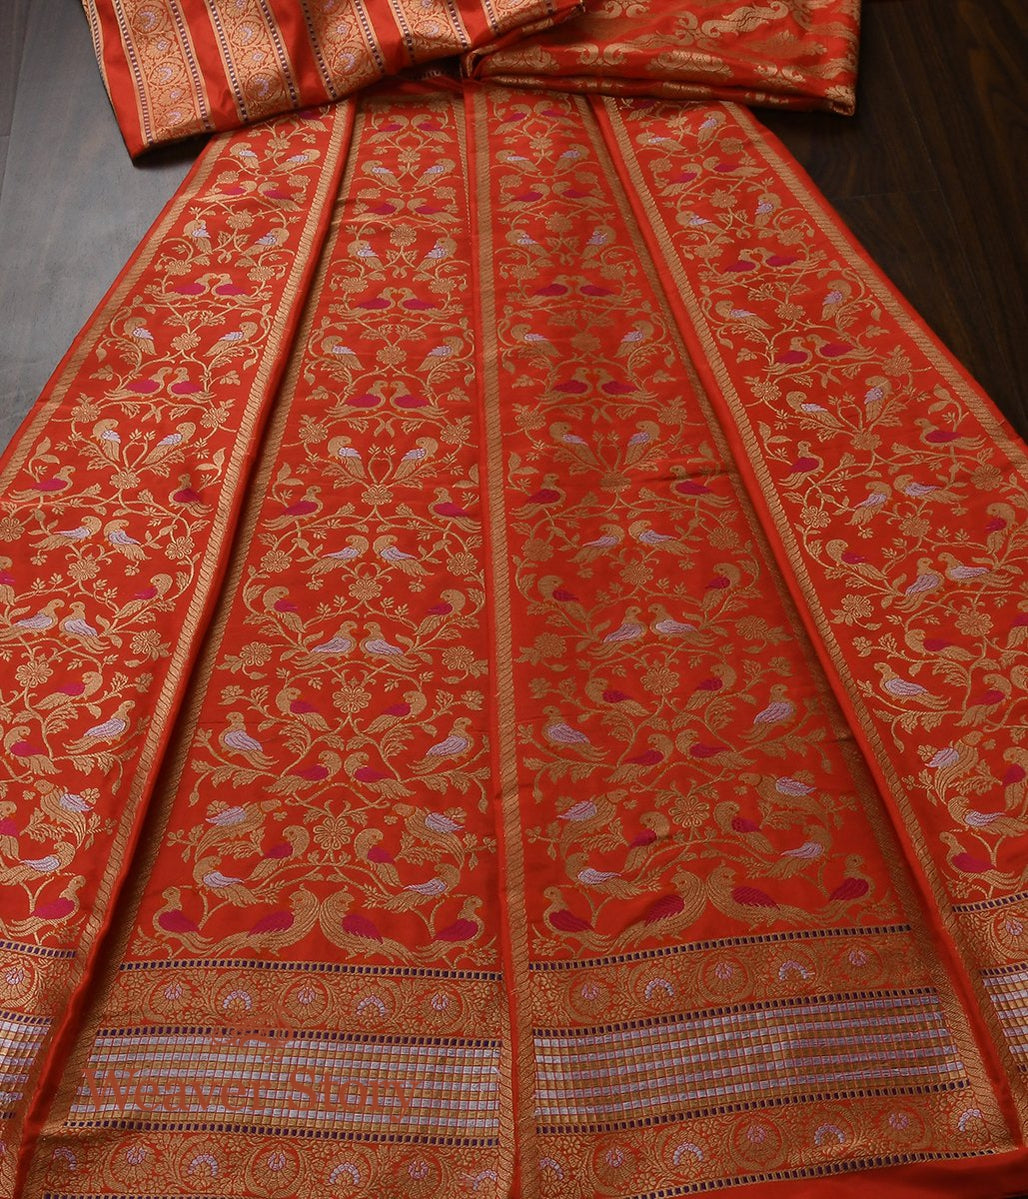 Handwoven Orange Meenakari Lehenga with Birds